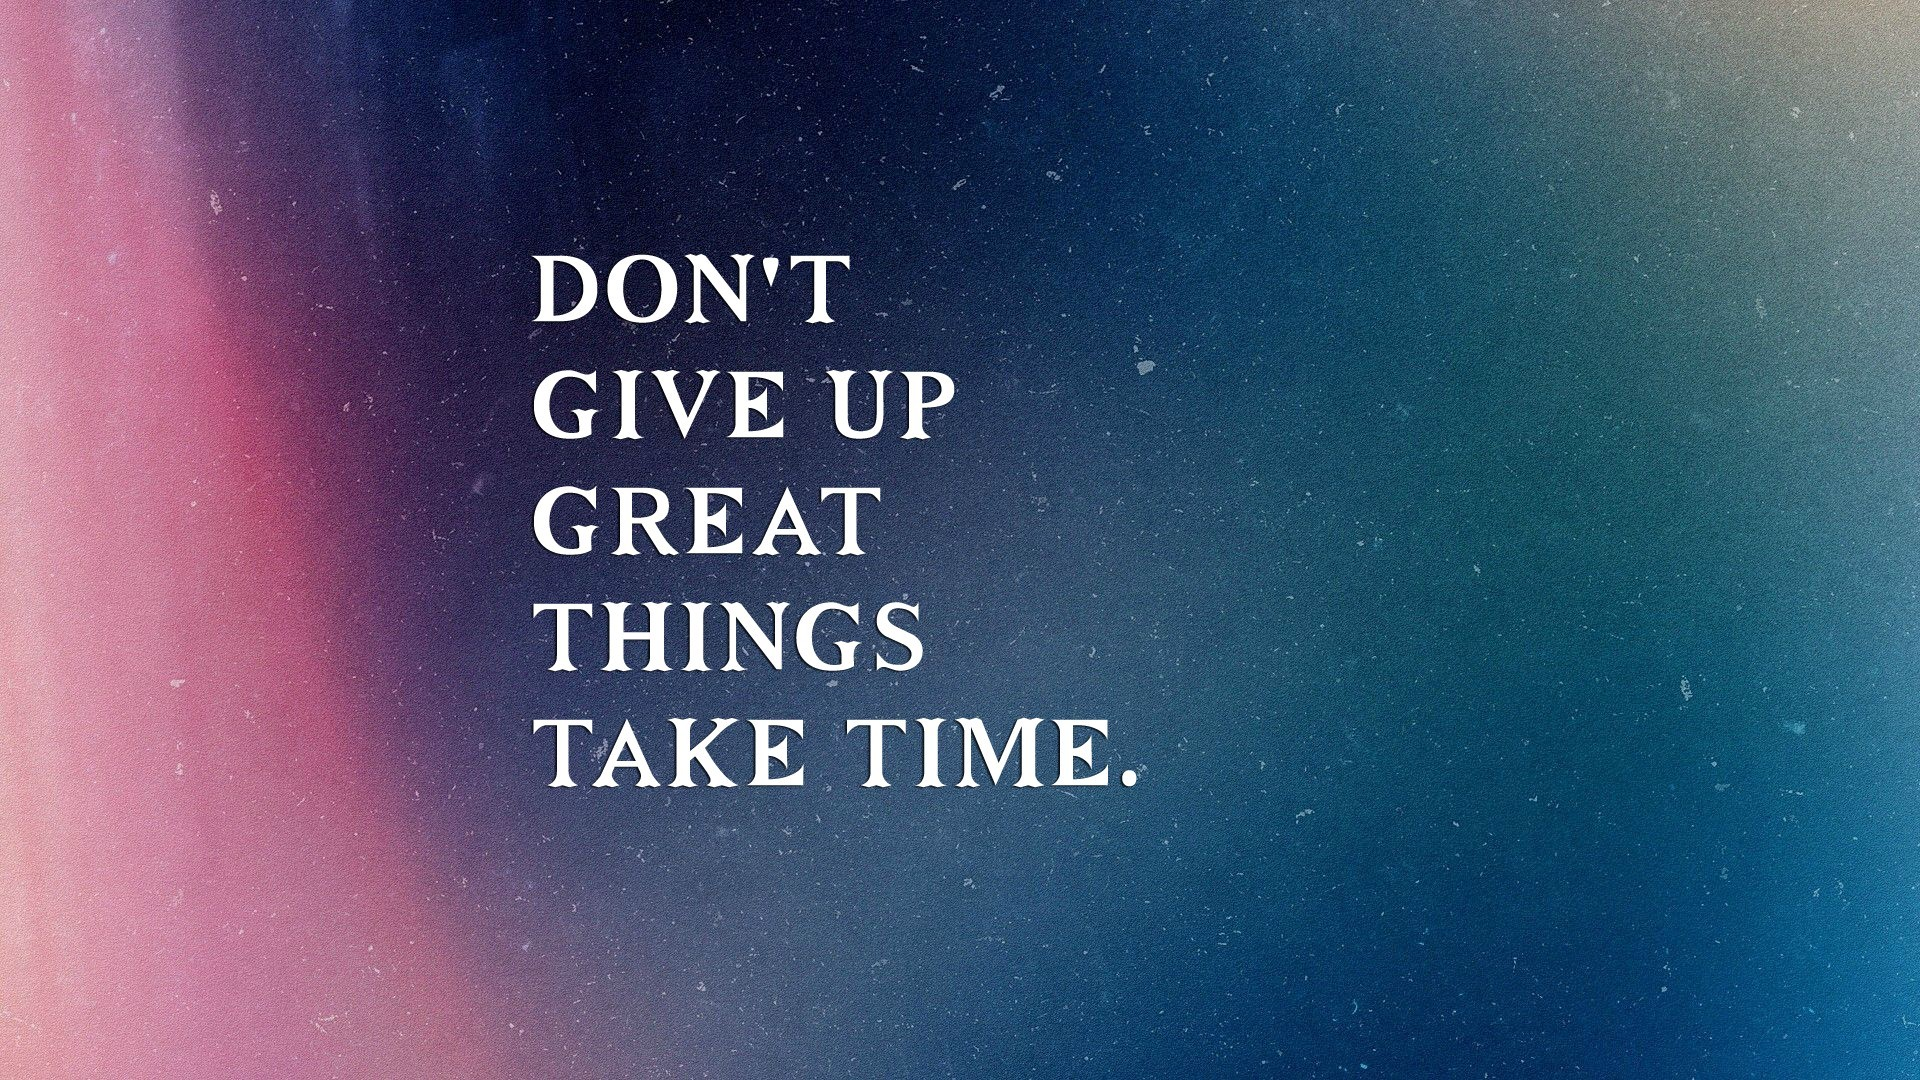 Motivational Quotes Wallpapers For Android Quote Wallpaper 183 ① Download Free Hd Wallpapers For Desktop